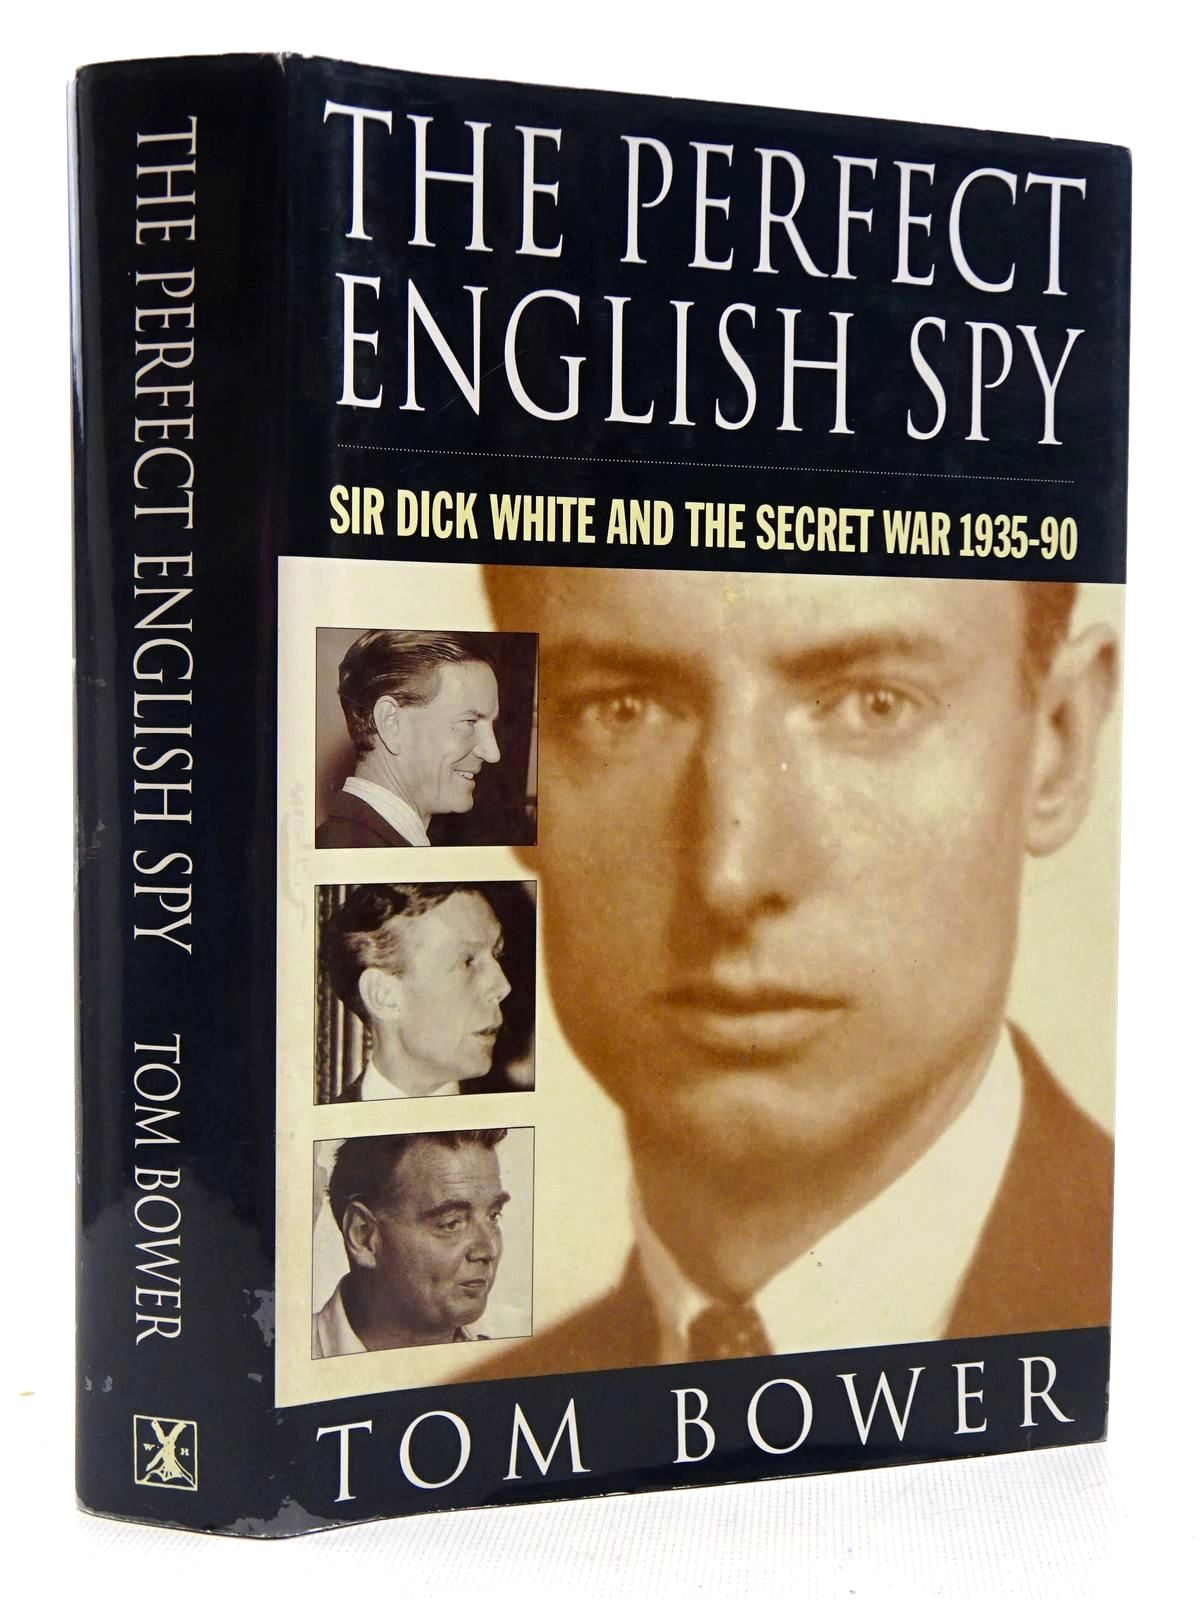 Photo of THE PERFECT ENGLISH SPY SIR DICK WHITE AND THE SECRET WAR 1935-90